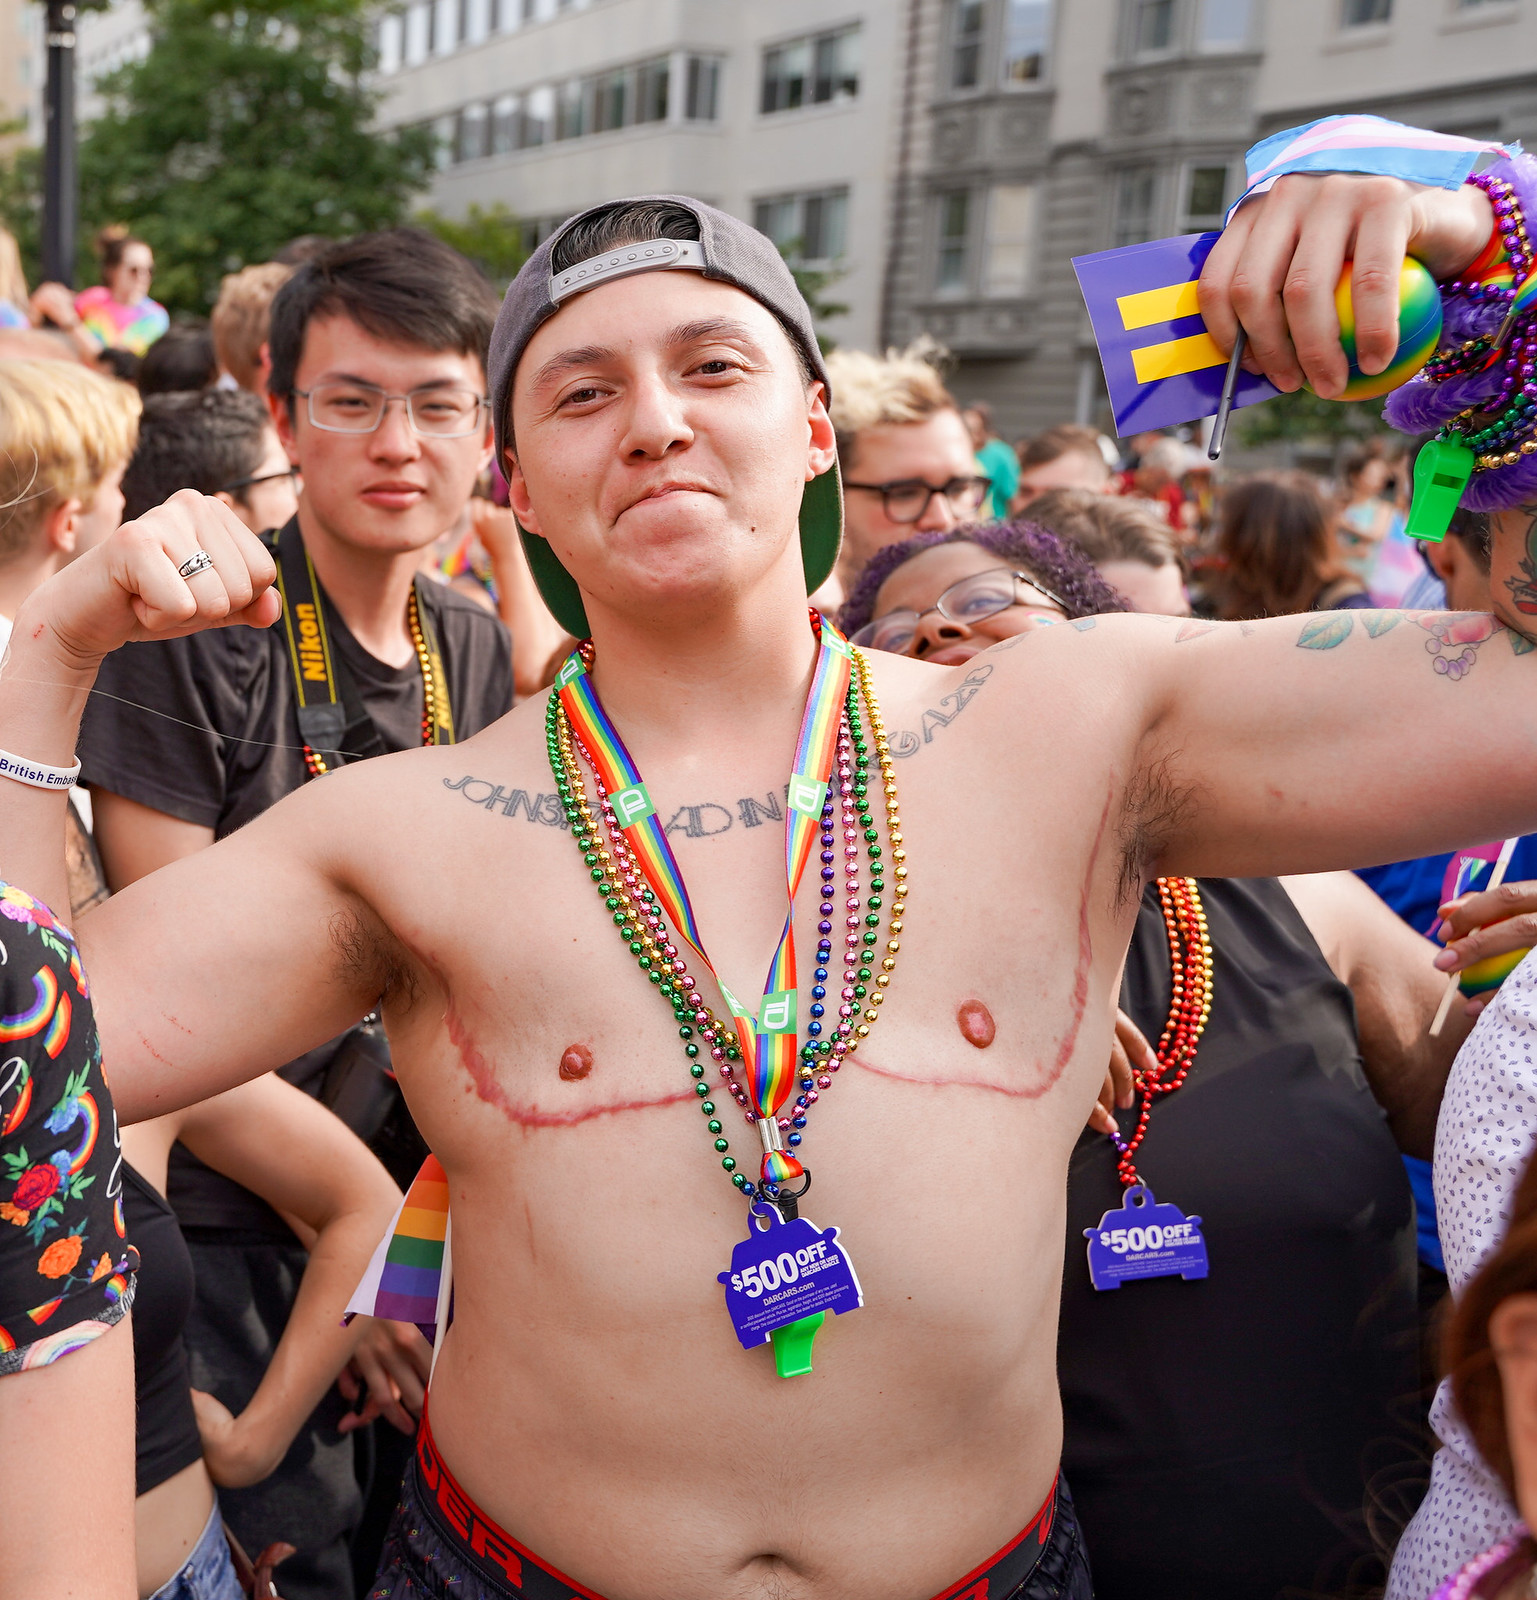 2019.06.08 Capital Pride Parade, Washington, DC USA 1590088